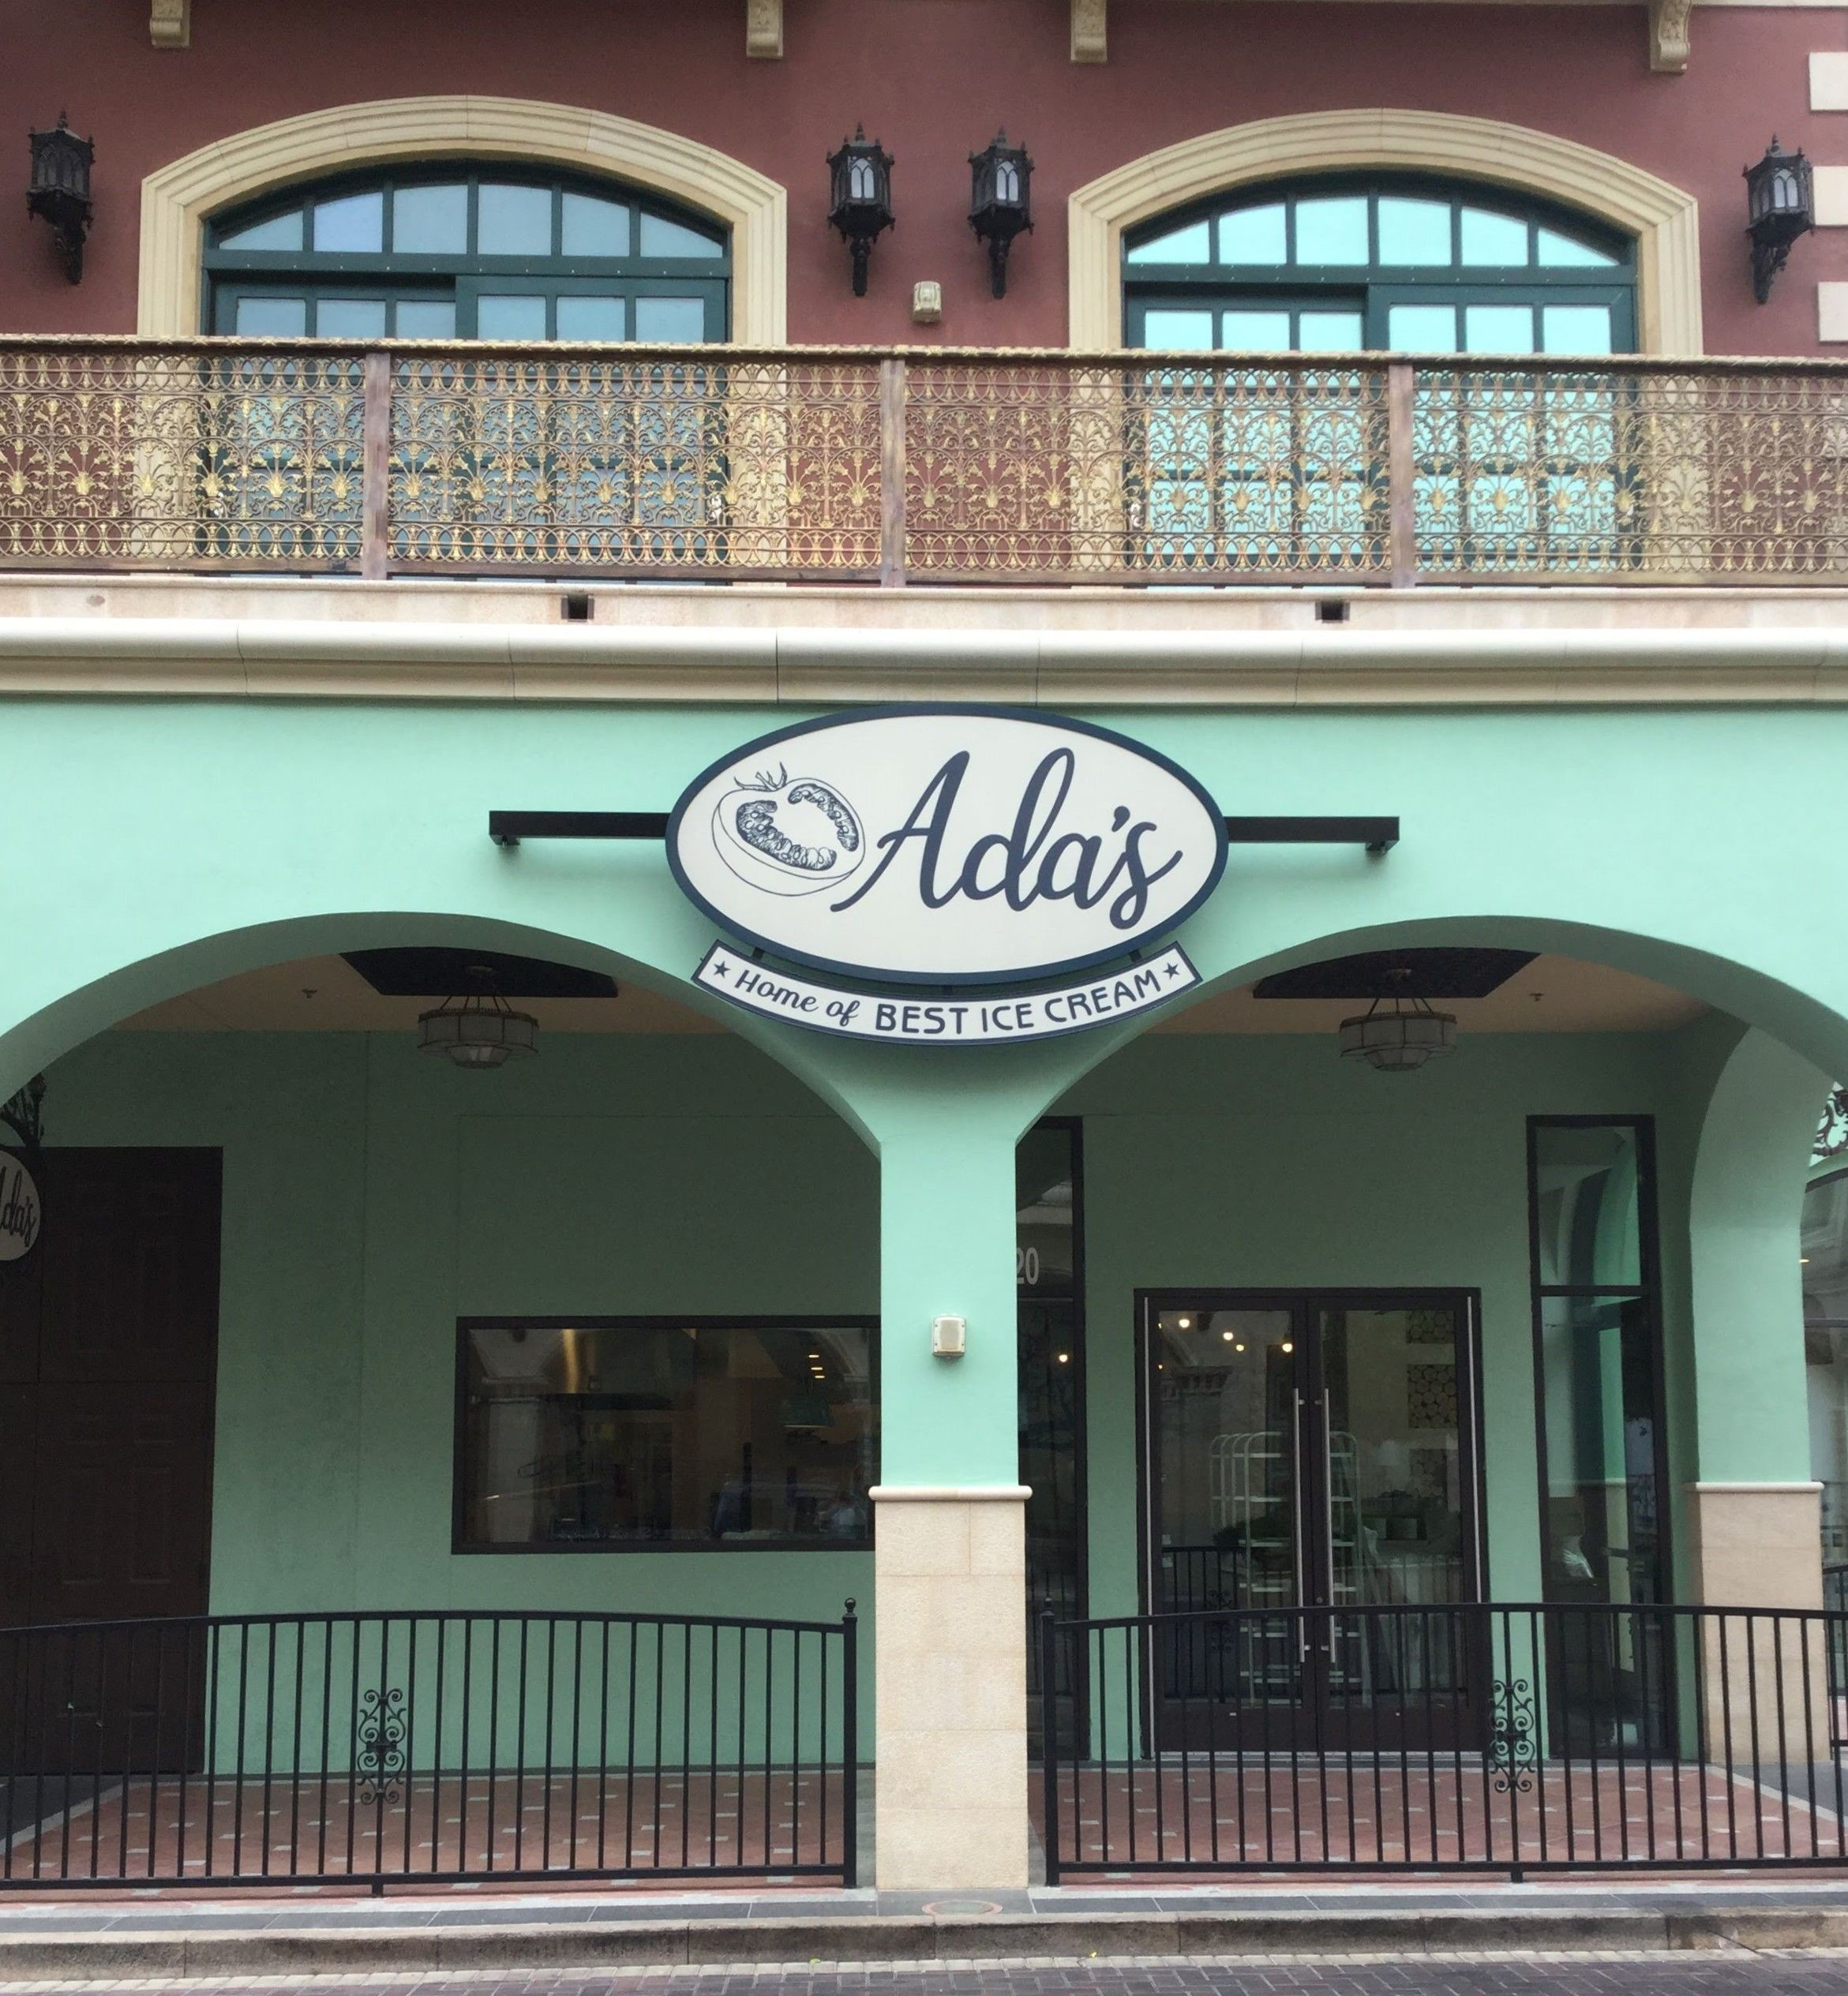 Lightbox Signs | Exterior & Outdoor Signage | Restaurant and Food Service Signs | Las Vegas